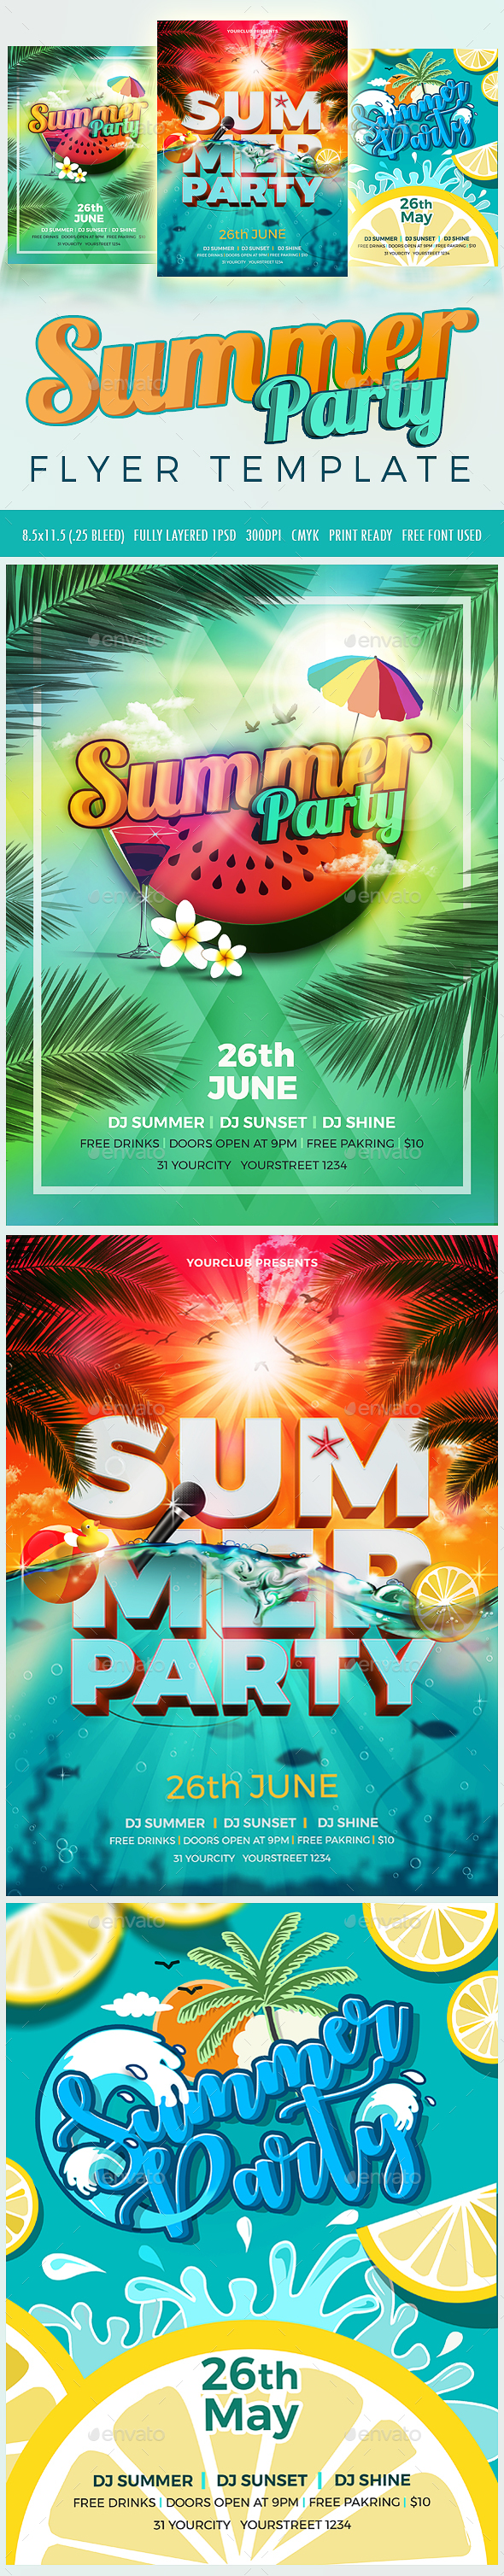 3 Summer Party Flyer